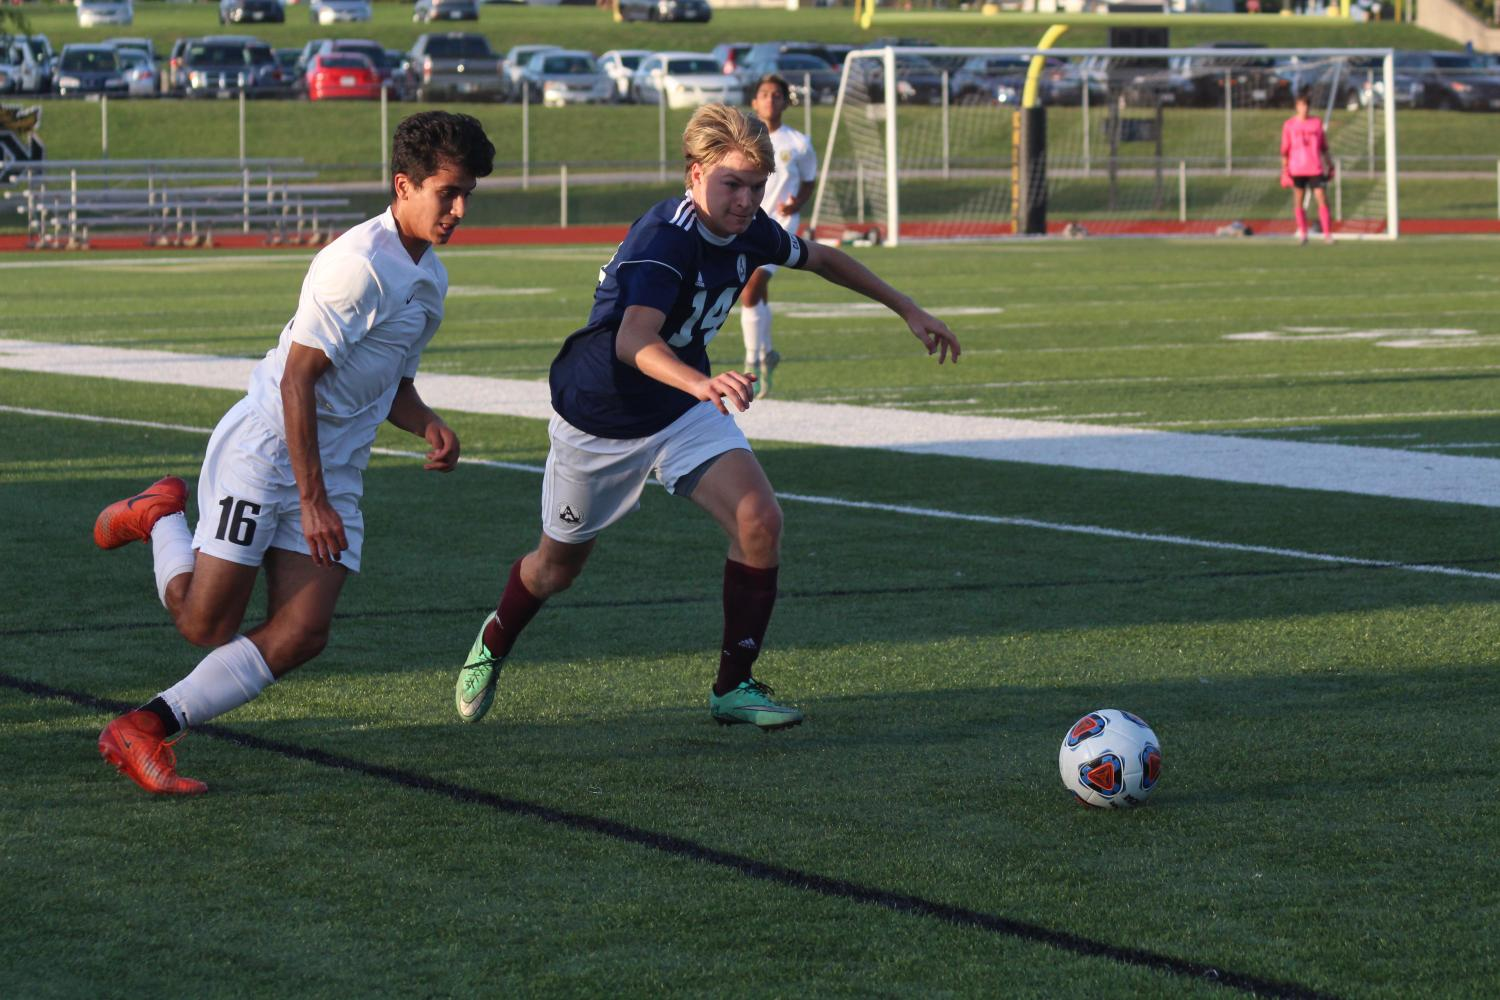 Senior Taylor Elzein runs towards the ball. Boys' varsity soccer played against the FHC Spartans on Sept. 5. The game tied 1-1 which forced the teams to go into overtime. The Knights won 2-1 due to Joel Arena's winning shot in penalty kicks.